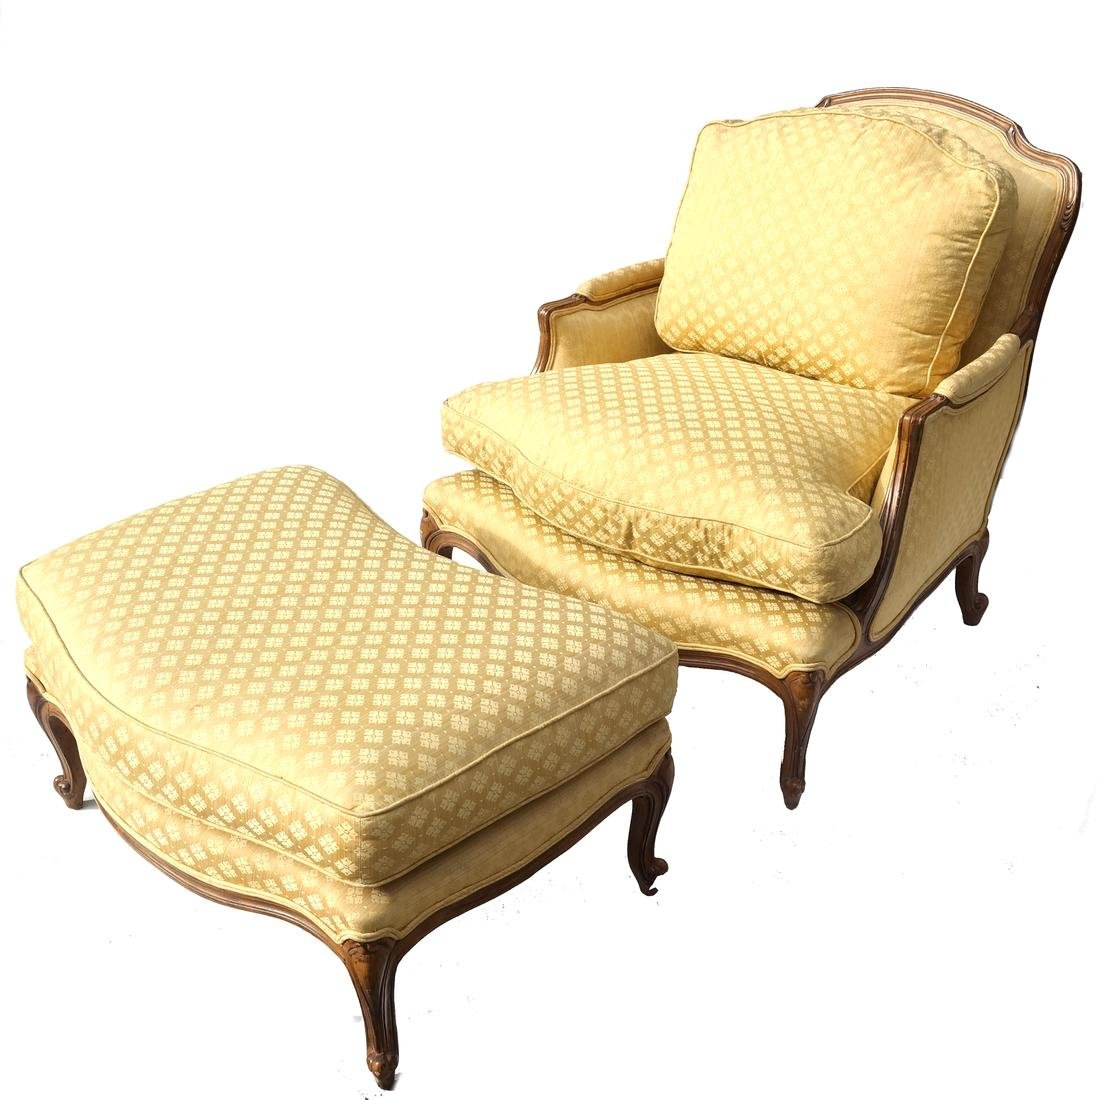 Two Part Provincial-Style Chaise